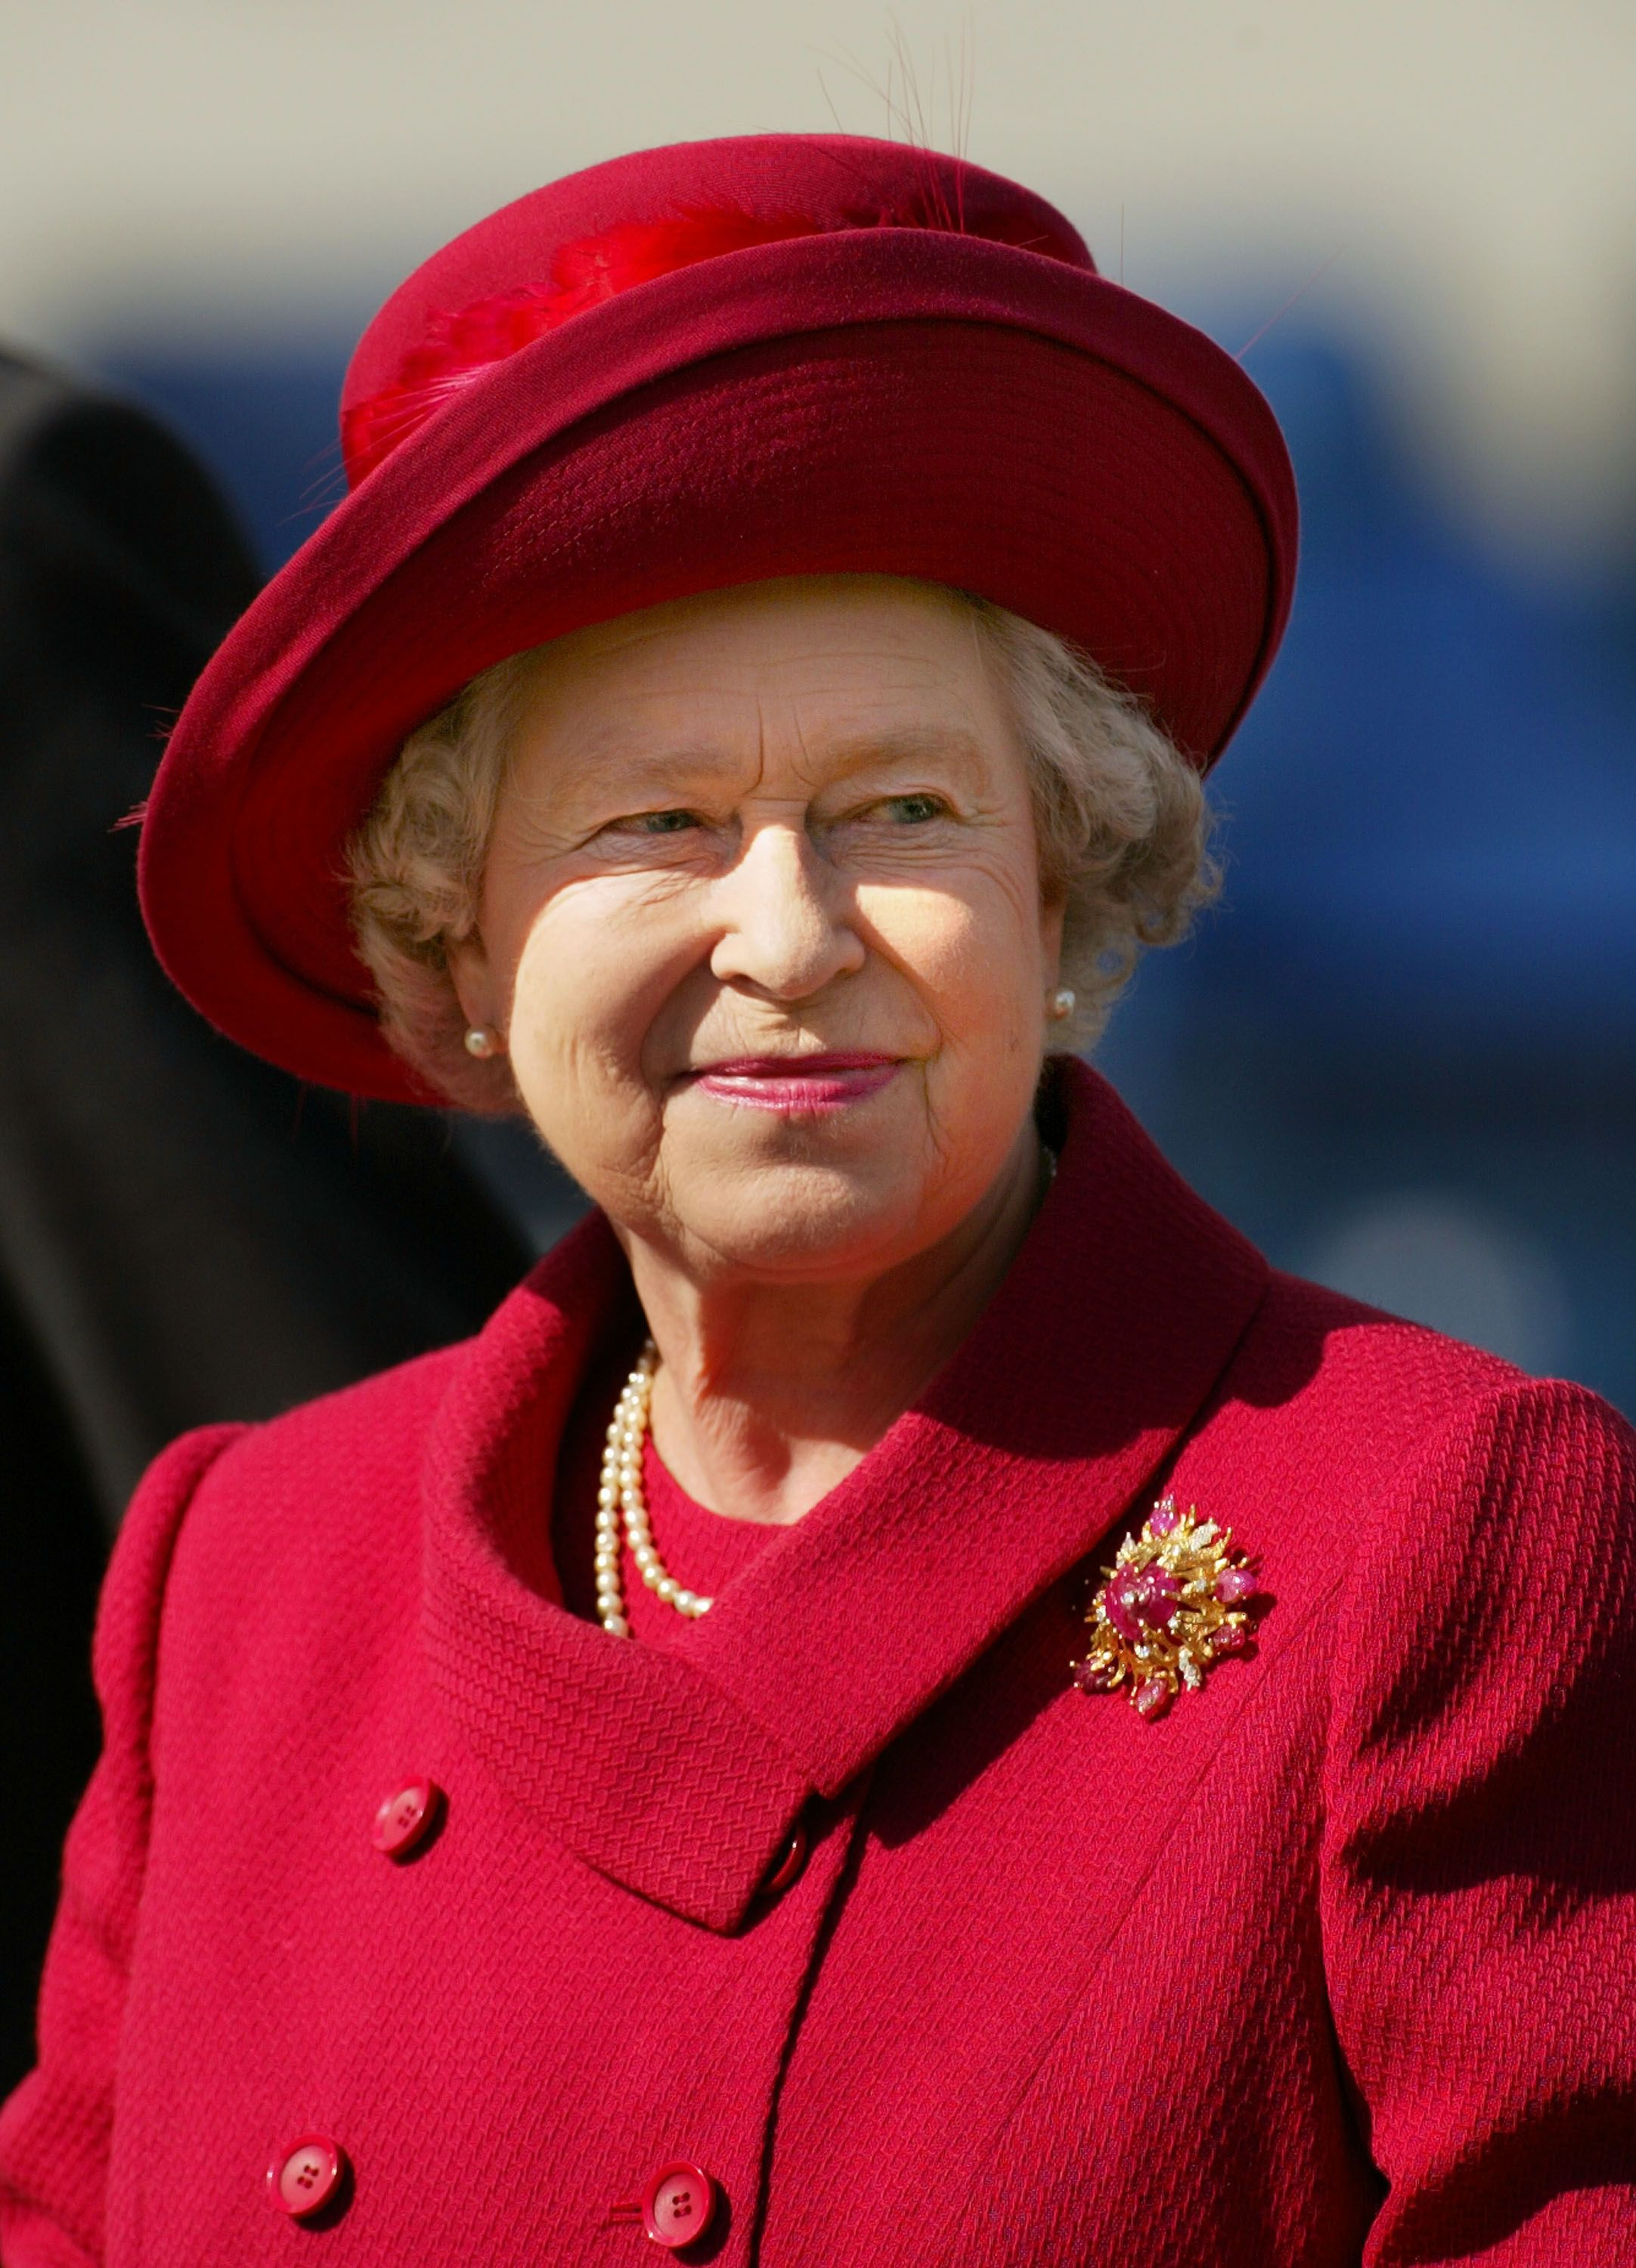 Queen Elizabeth at The Royal Windsor Horse Show at Windsor In May 18, 2002, Great Park, England. | Source: Getty Images